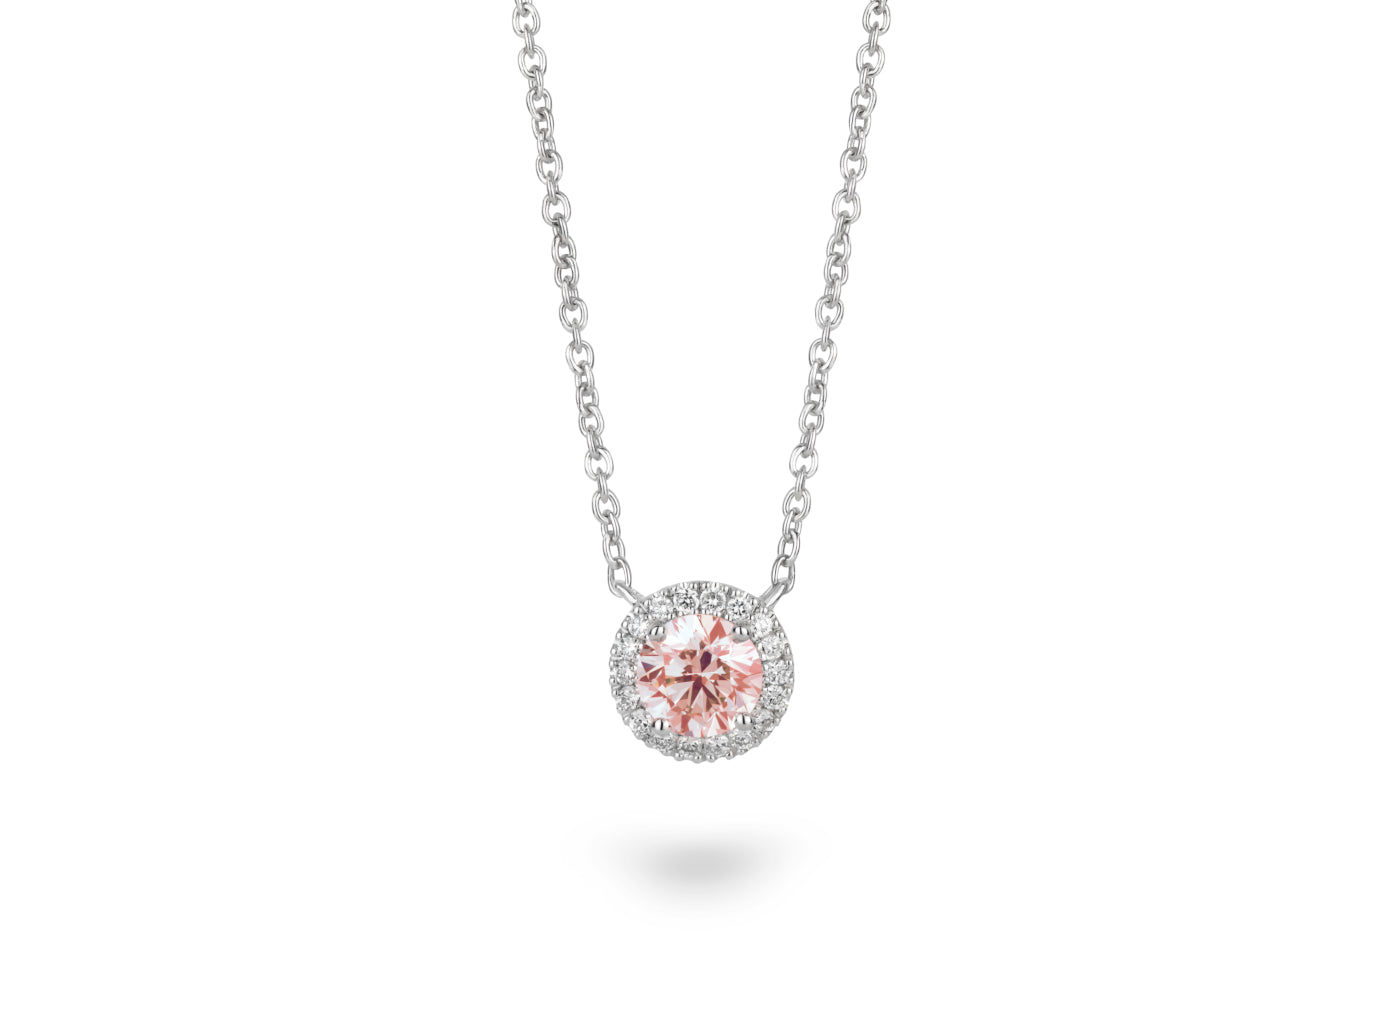 Front view of Halo 3/4 carat pendant with pink and white diamonds